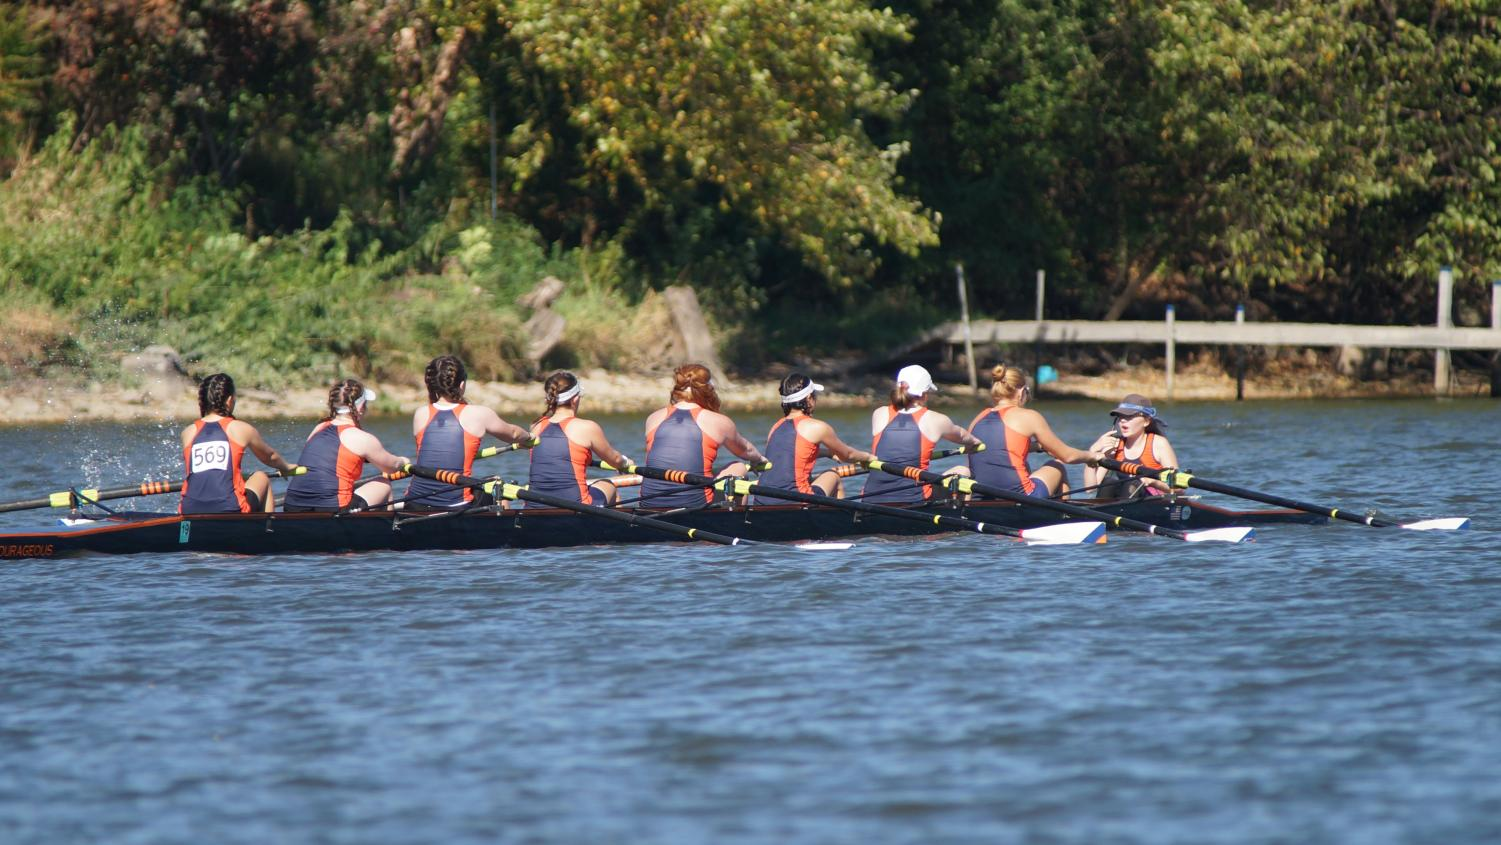 Despite the lack of a BSM rowing team, students with a passion for the sport have found a way to participate. With practices six days a week, sometimes twice a day, the sport requires commitment from the rowers.